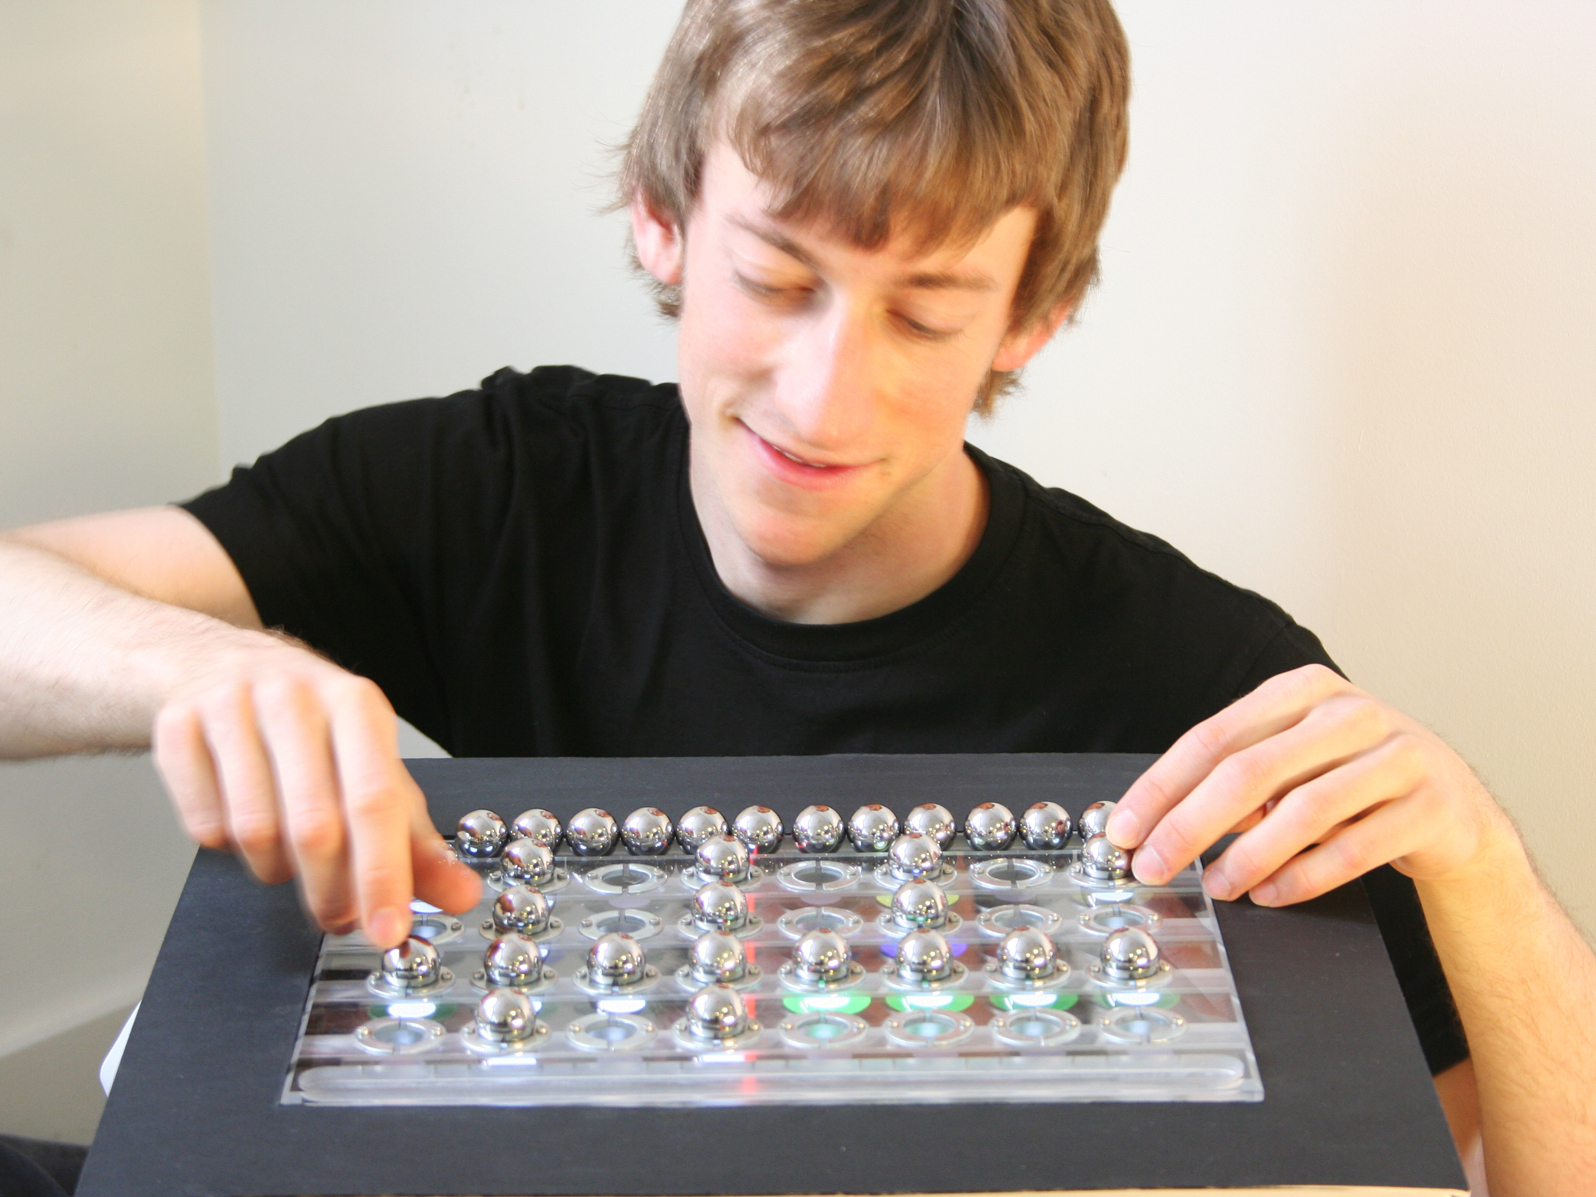 The BeatBearing Tangible Rhythm Sequencer